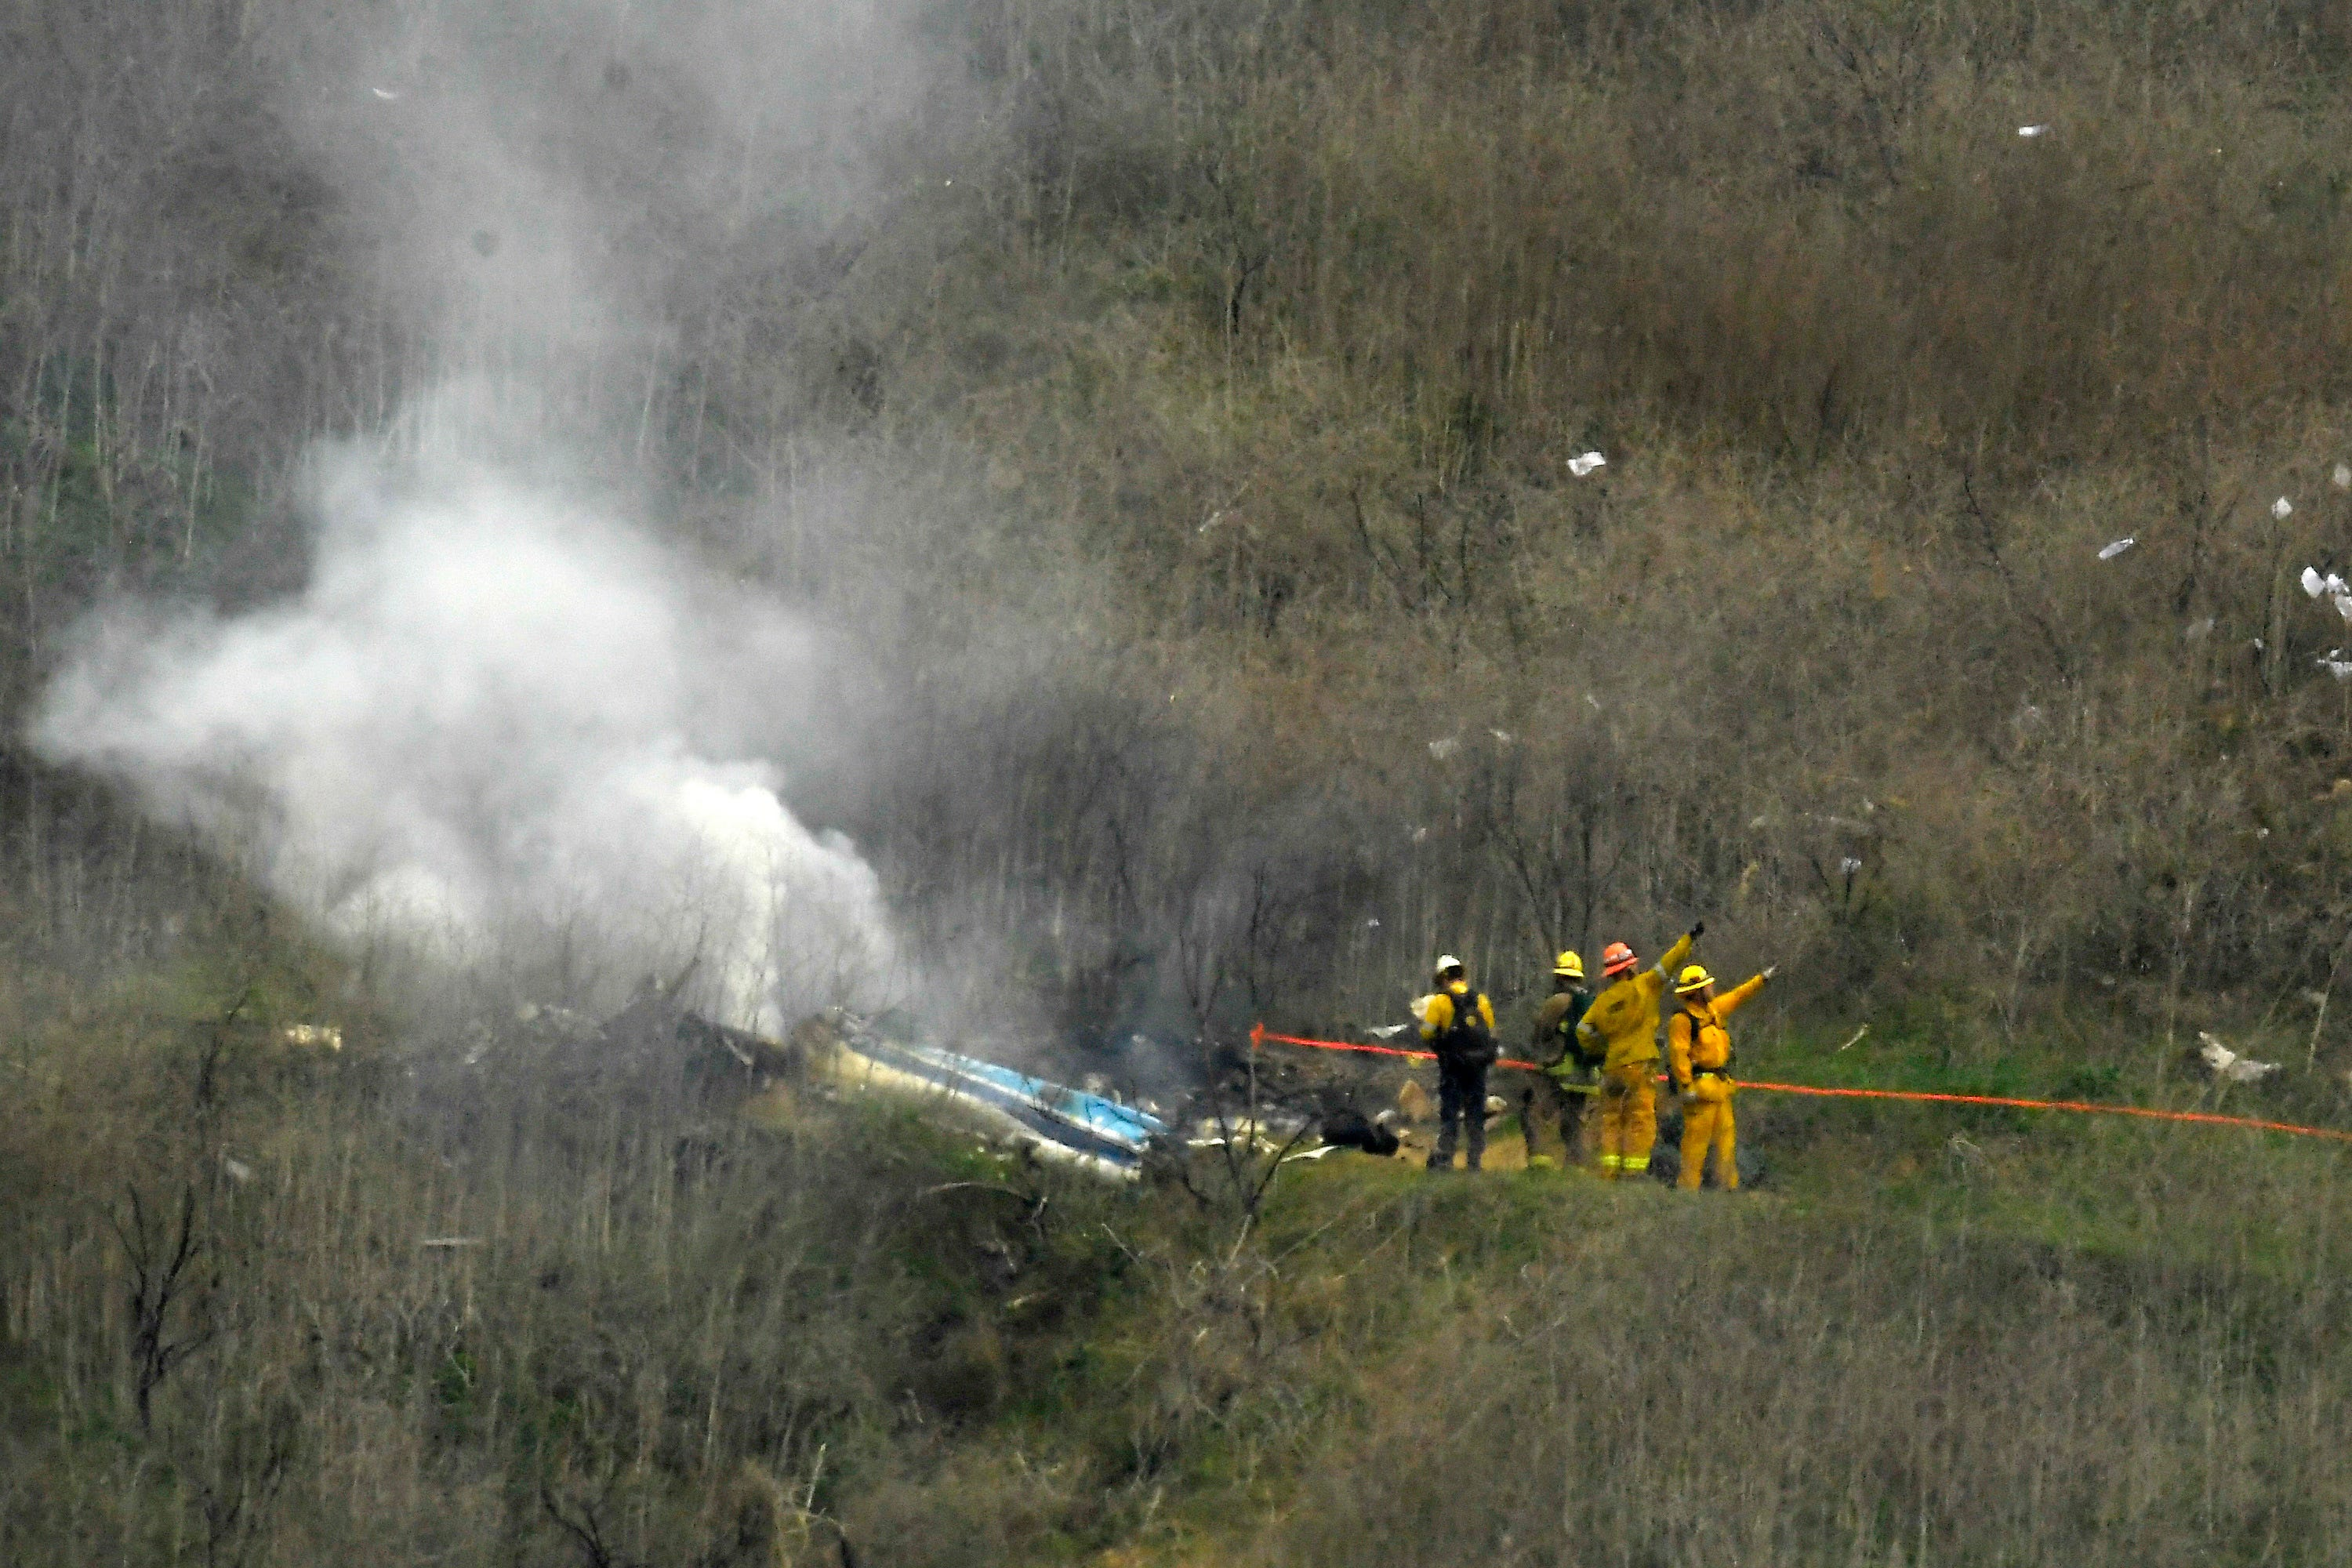 Helicopter company in crash that killed Kobe Bryant sues air traffic controllers